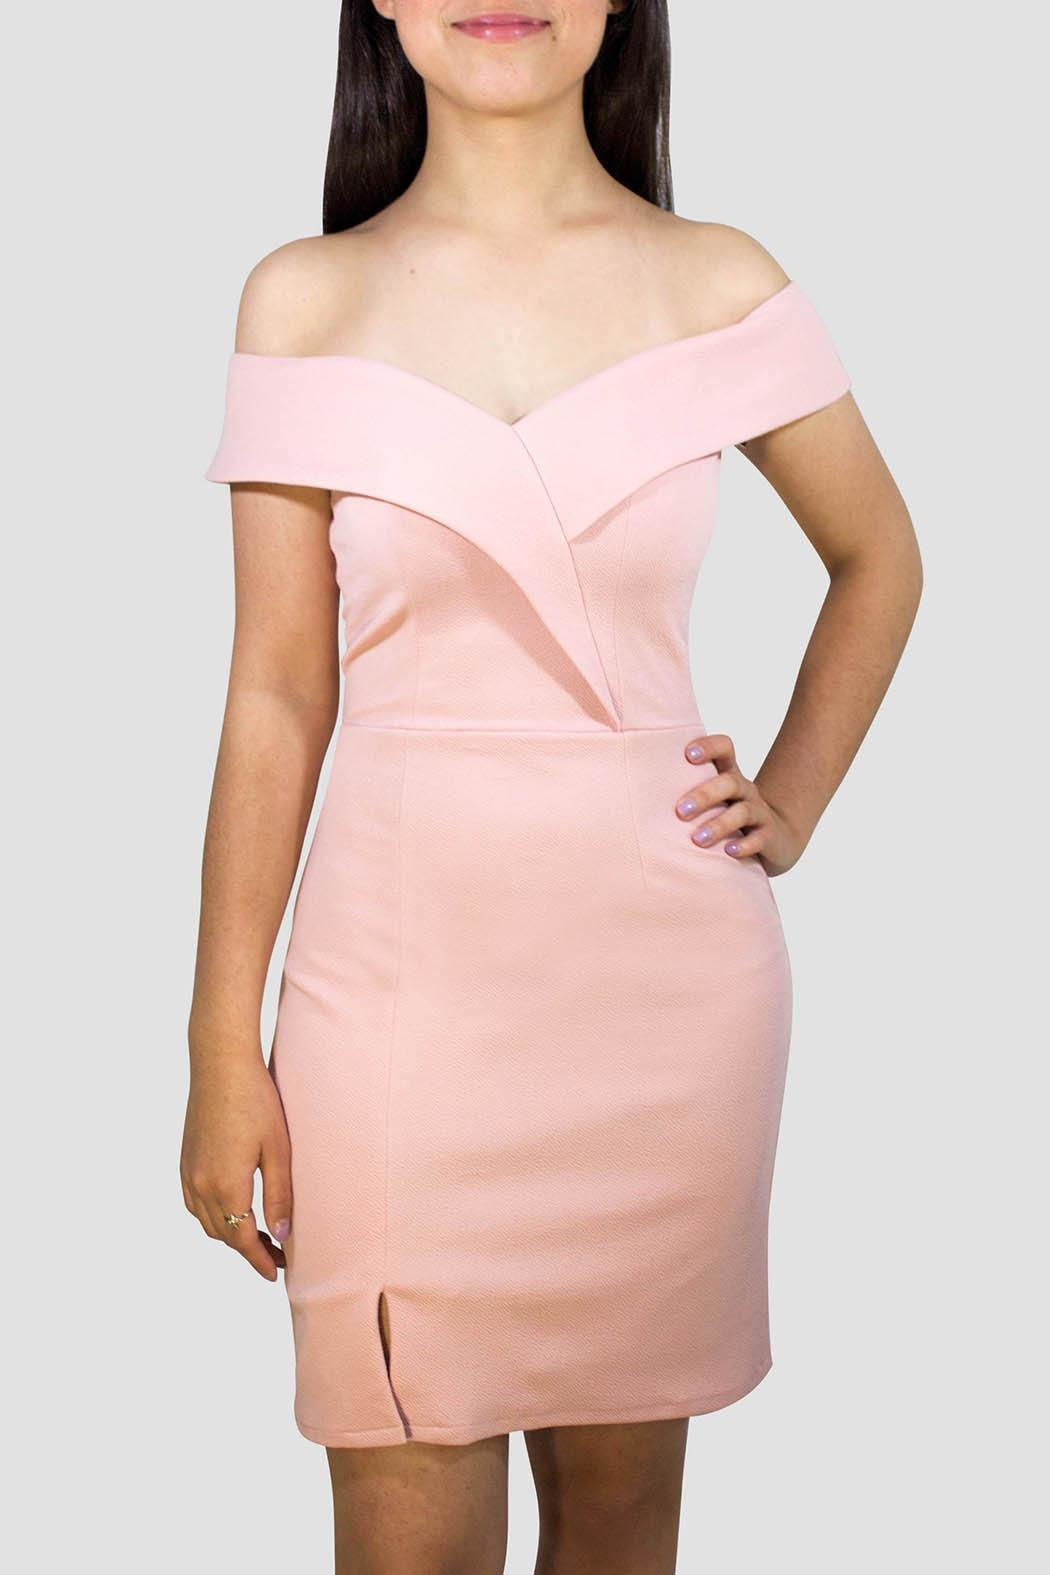 SoZu Sweetheart Neckline Dress - Front Cropped Image